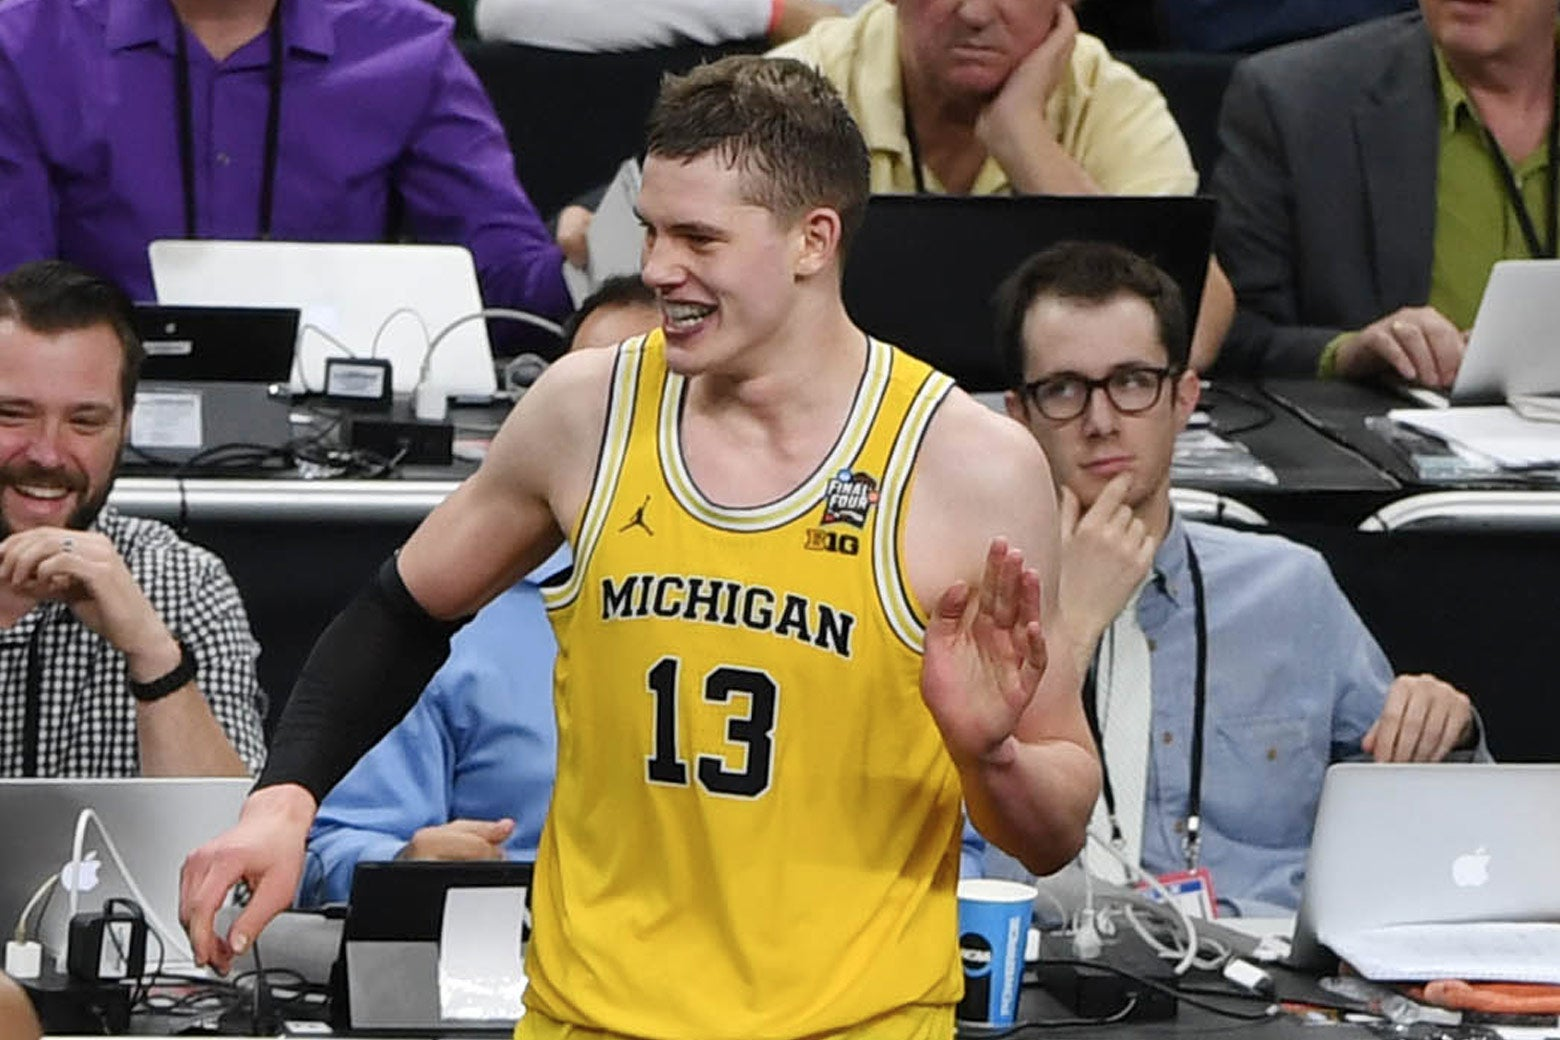 Mar 31, 2018; San Antonio, TX, USA; Michigan Wolverines forward Moritz Wagner (13) reacts with teammates Muhammad-Ali Abdur-Rahkman (12) and Charles Matthews (1) after falling into the press table in the second half in the semifinals of the 2018 men's Final Four at Alamodome.